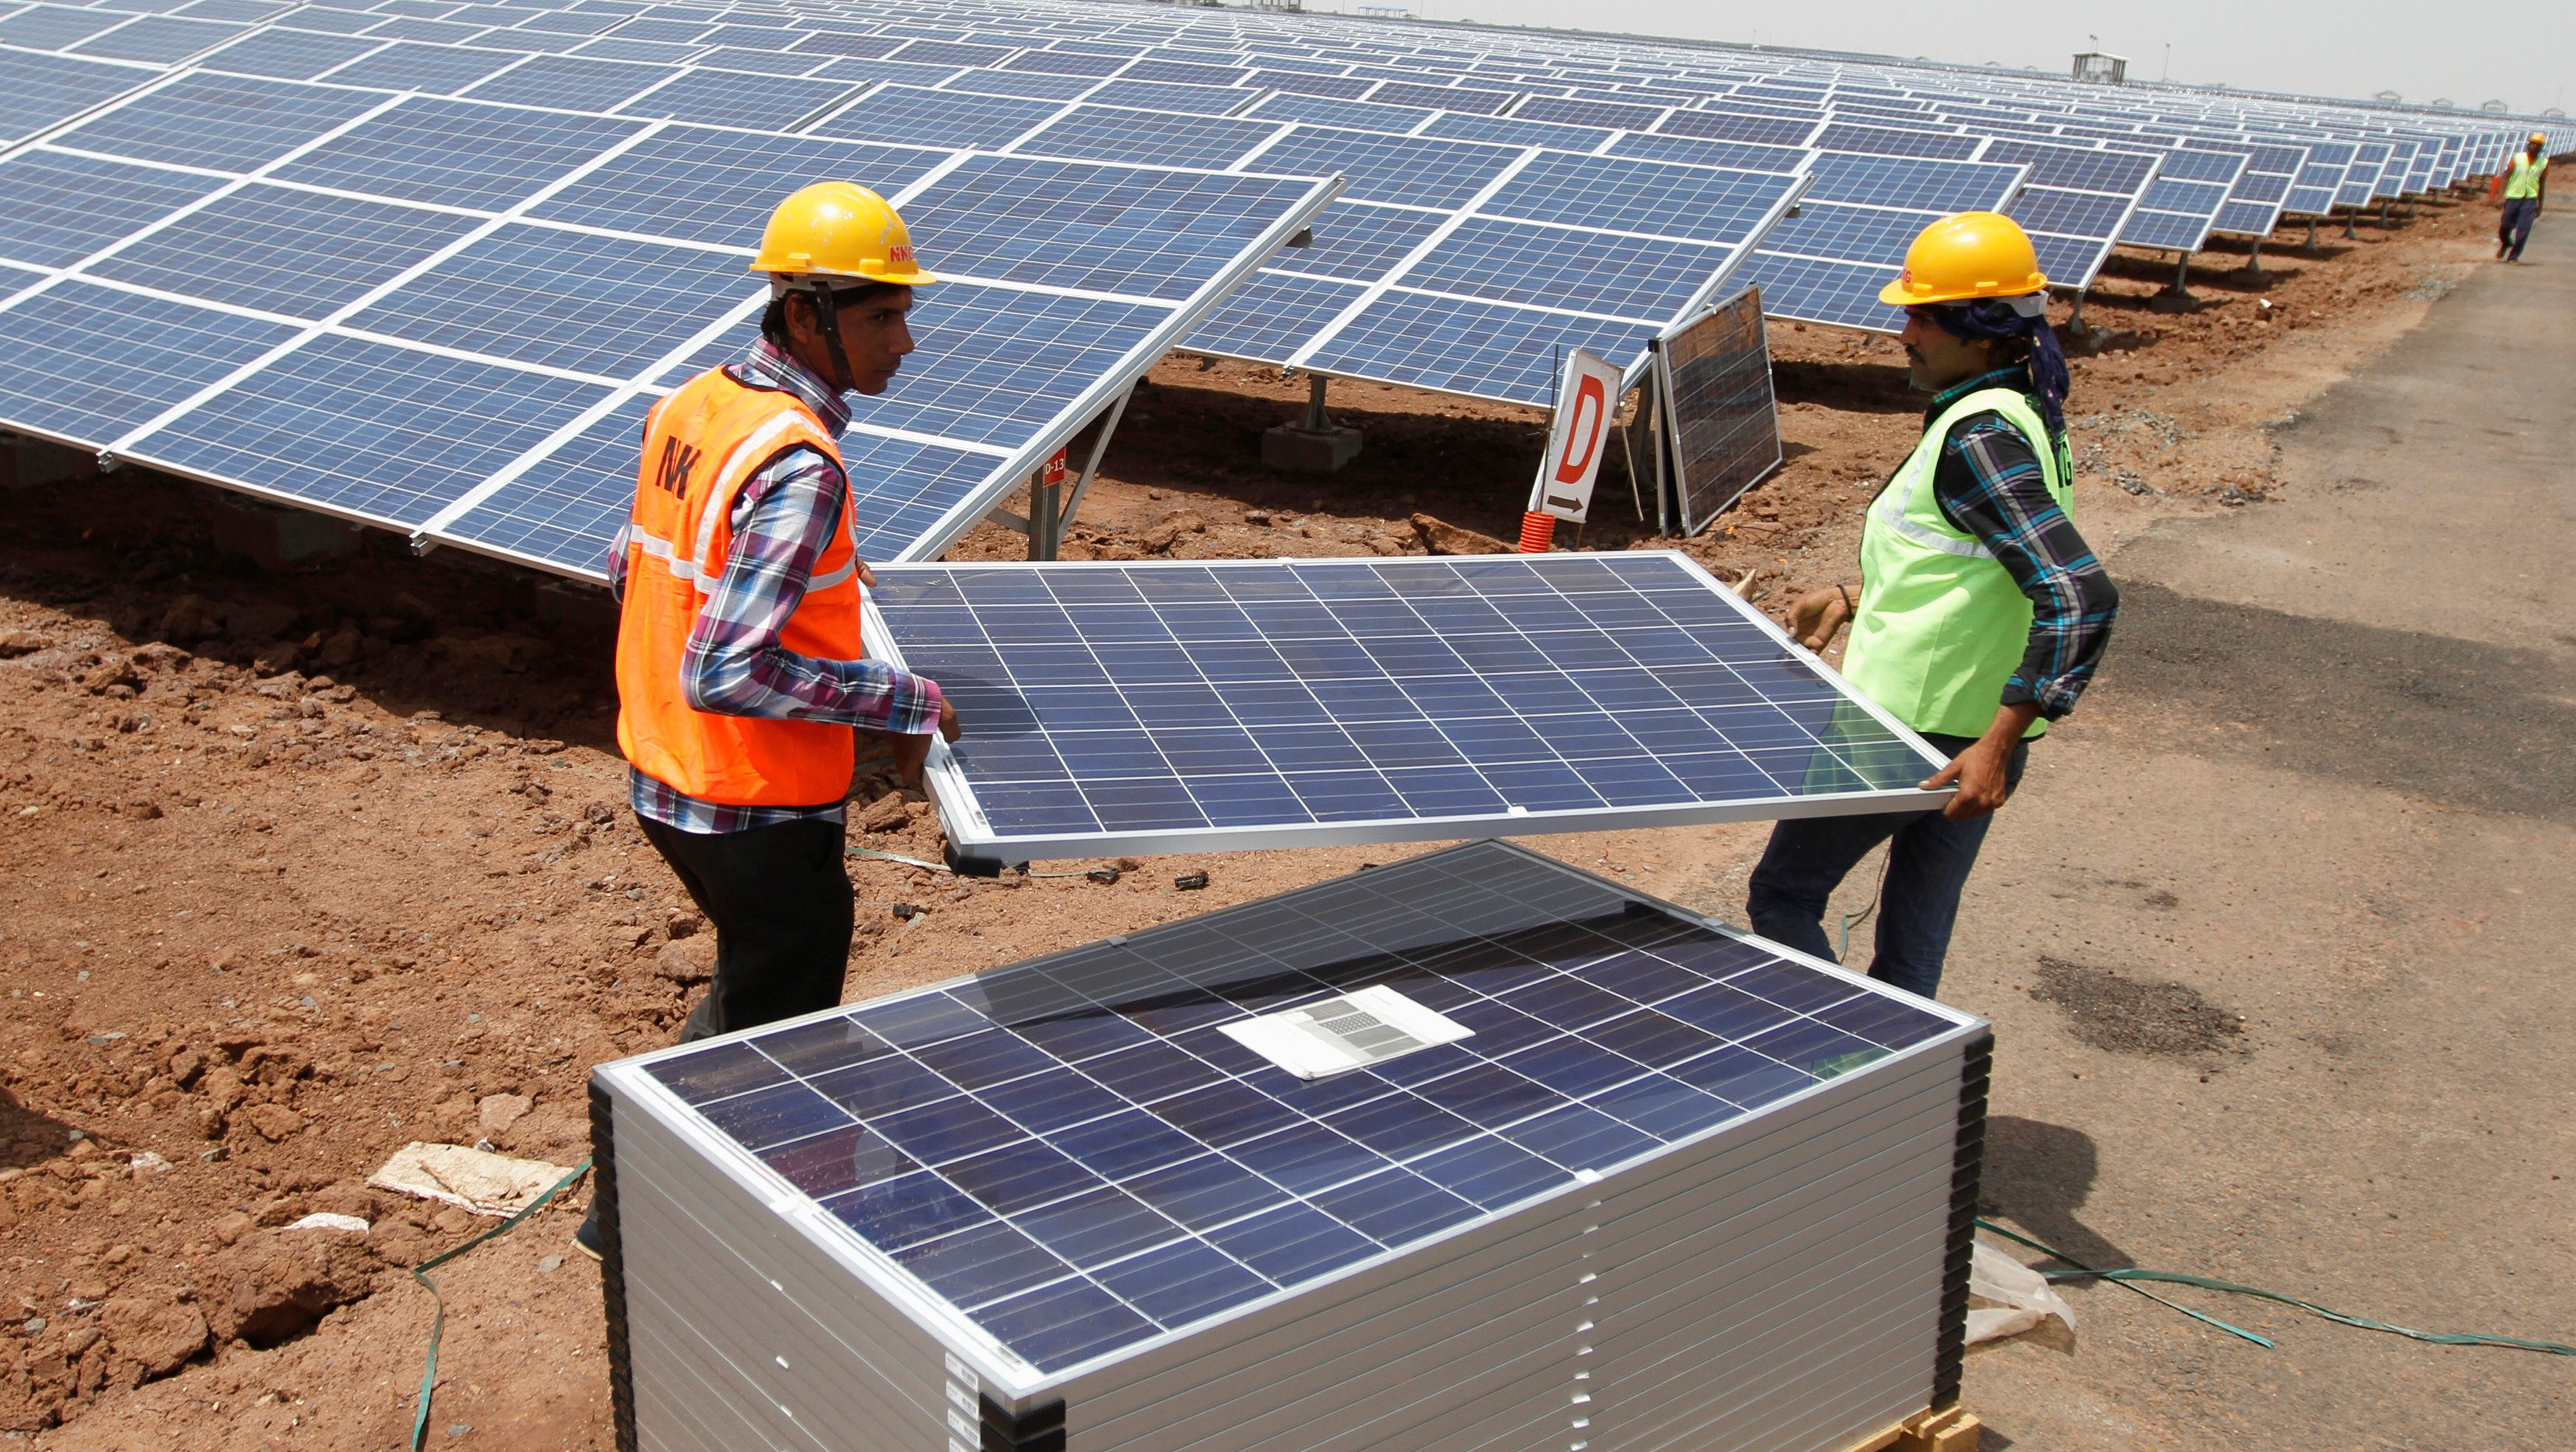 FILE PHOTO: Workers carry photovoltaic solar panels for installation at the Gujarat solar park under construction in Charanka village